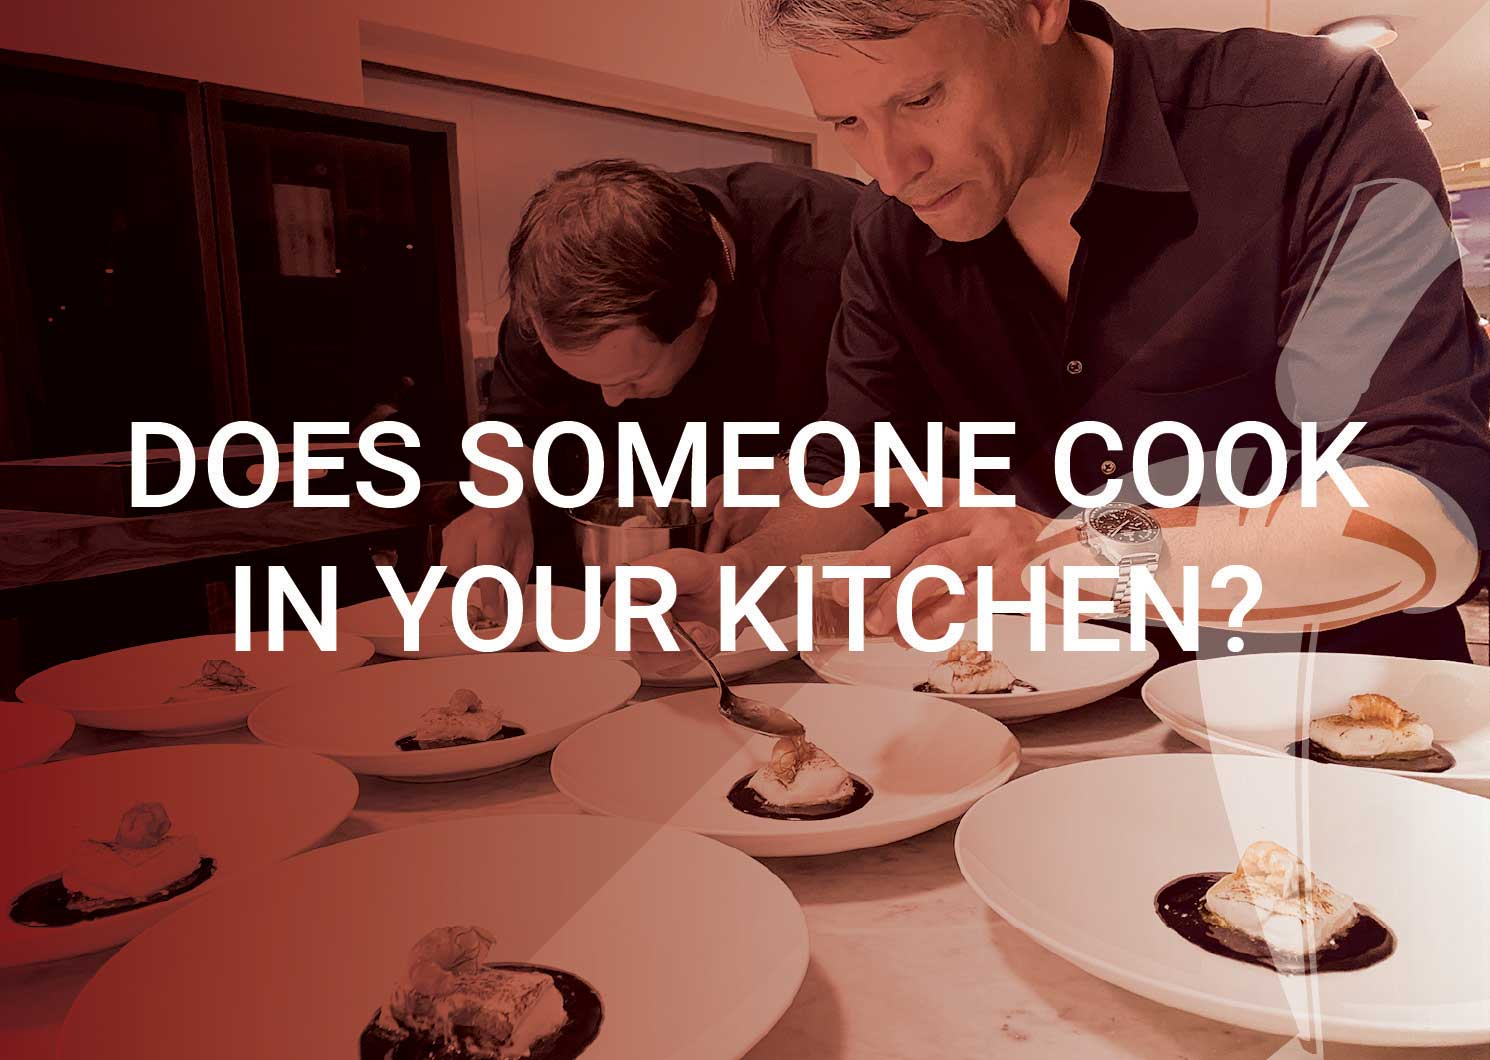 Does someone cook in your kitchen?